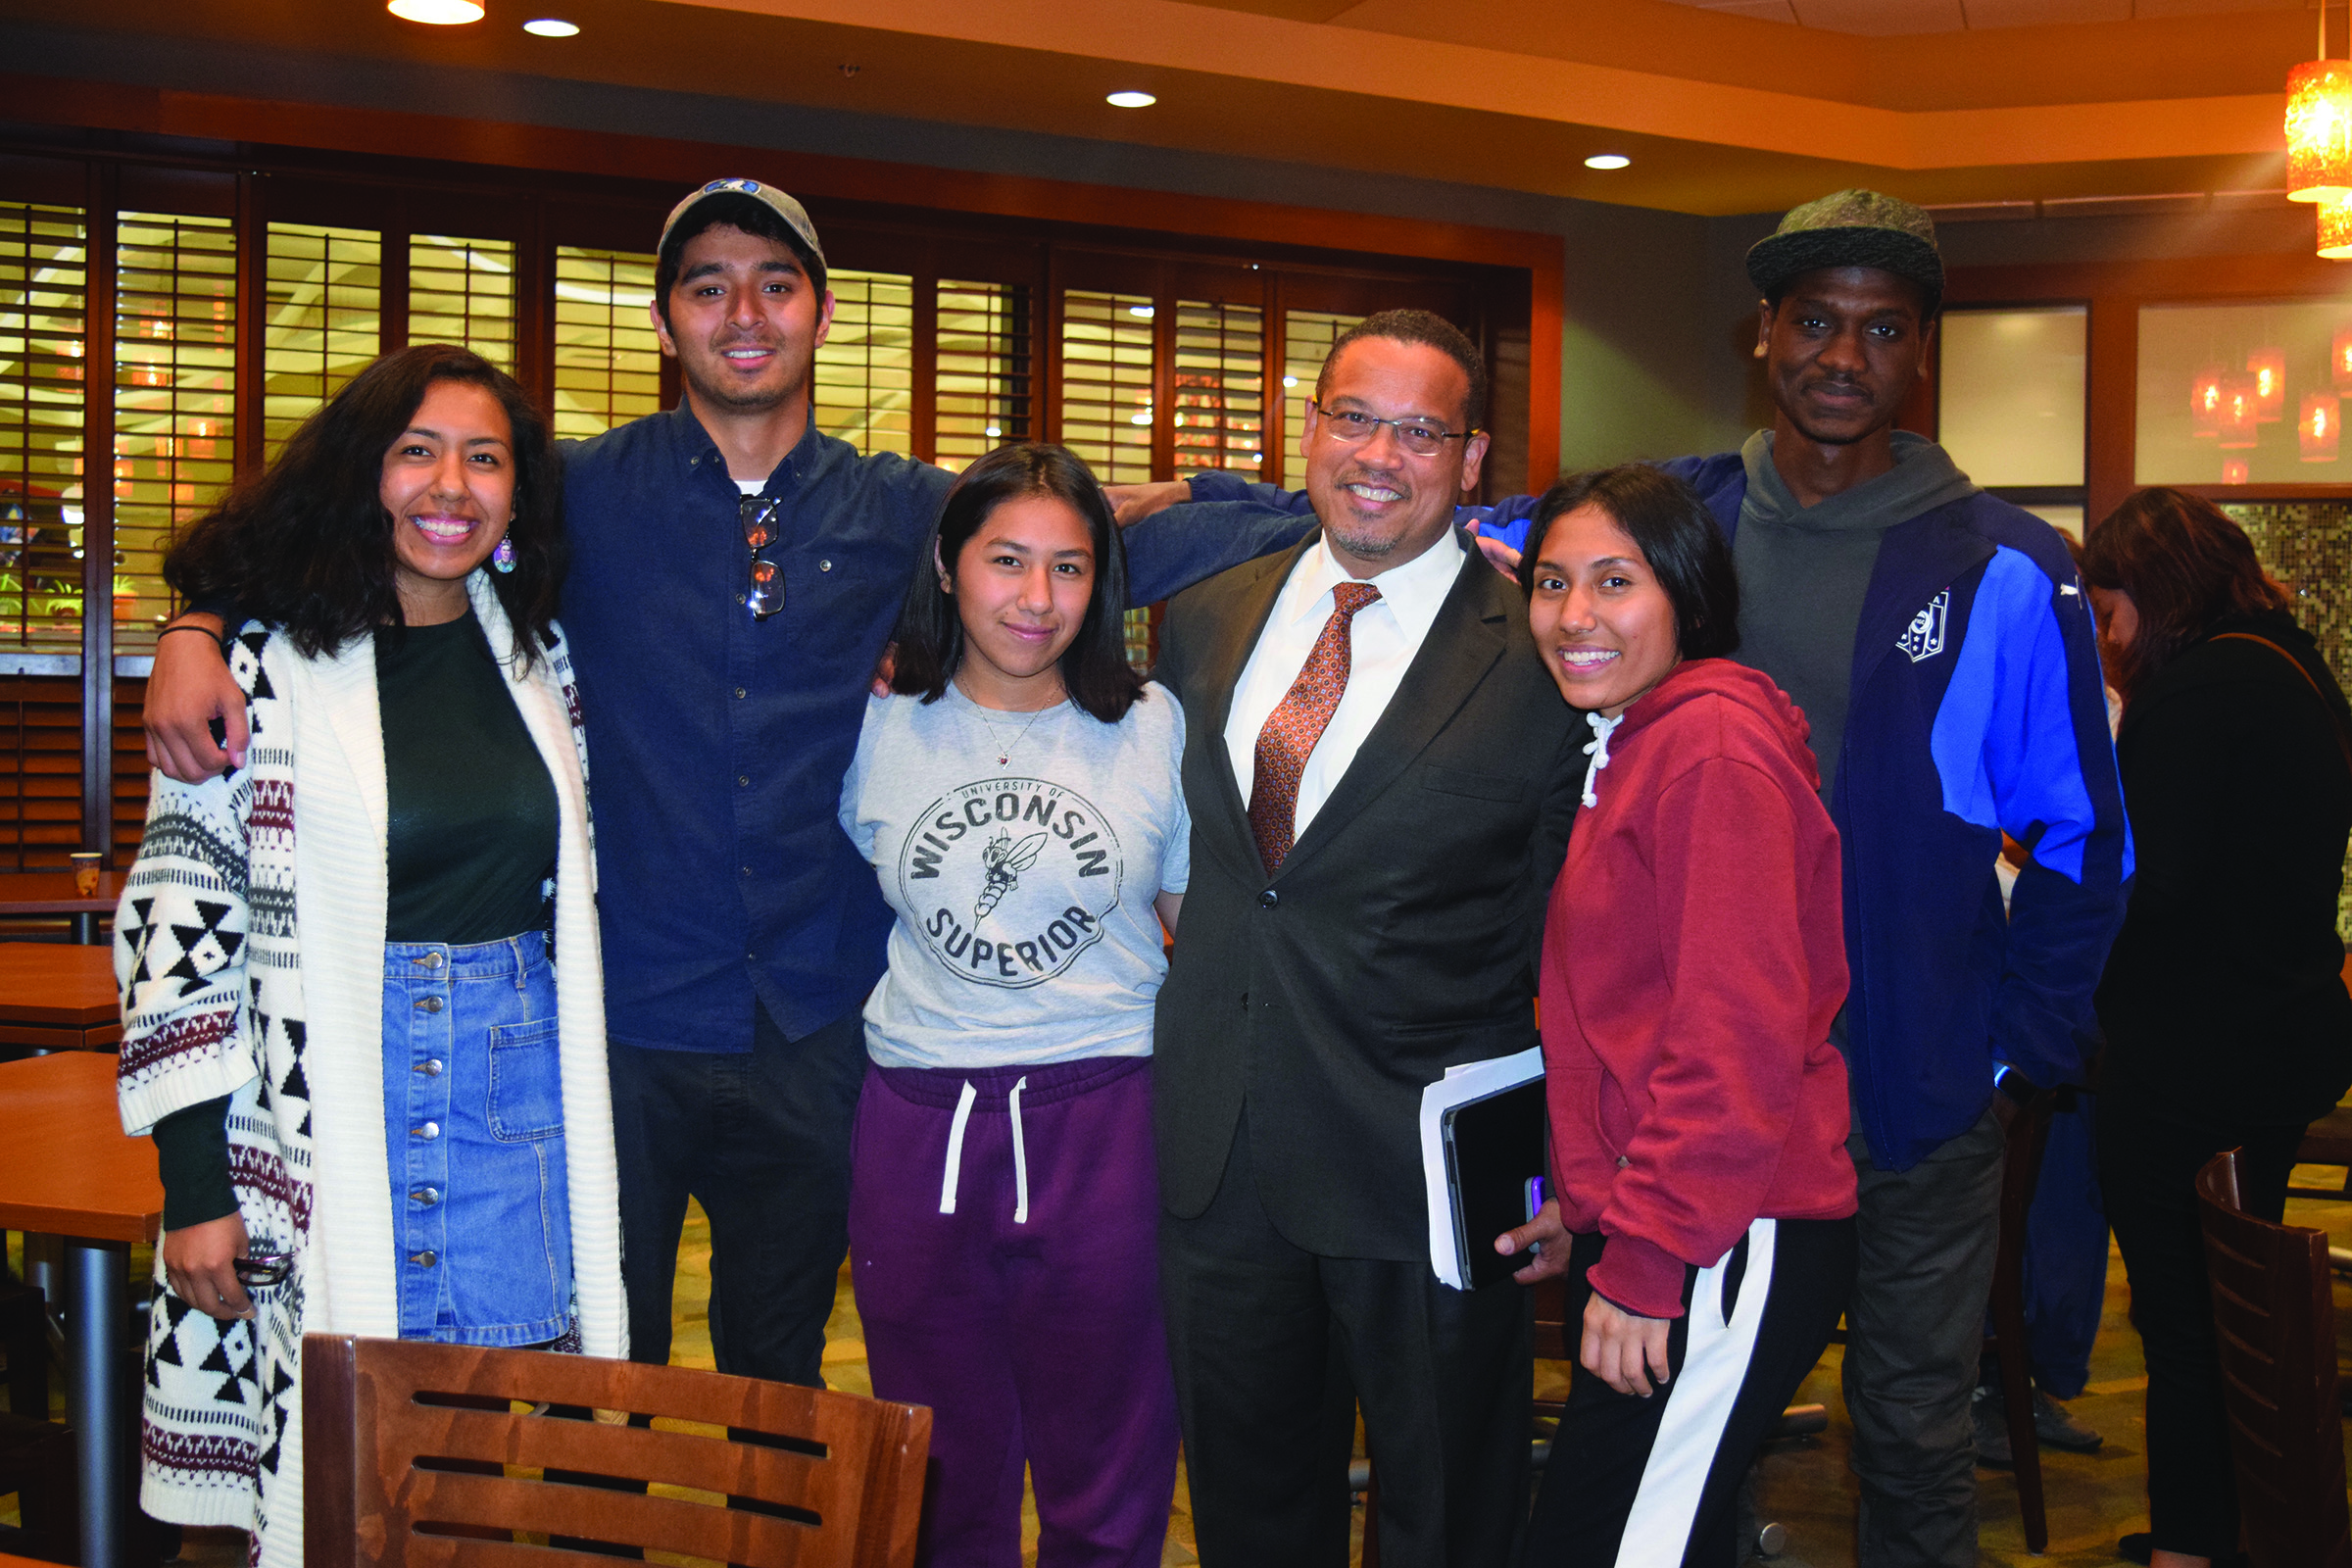 Keith Ellison stopped to greet XLU club on his way out. Photo credit: Emily Lazear